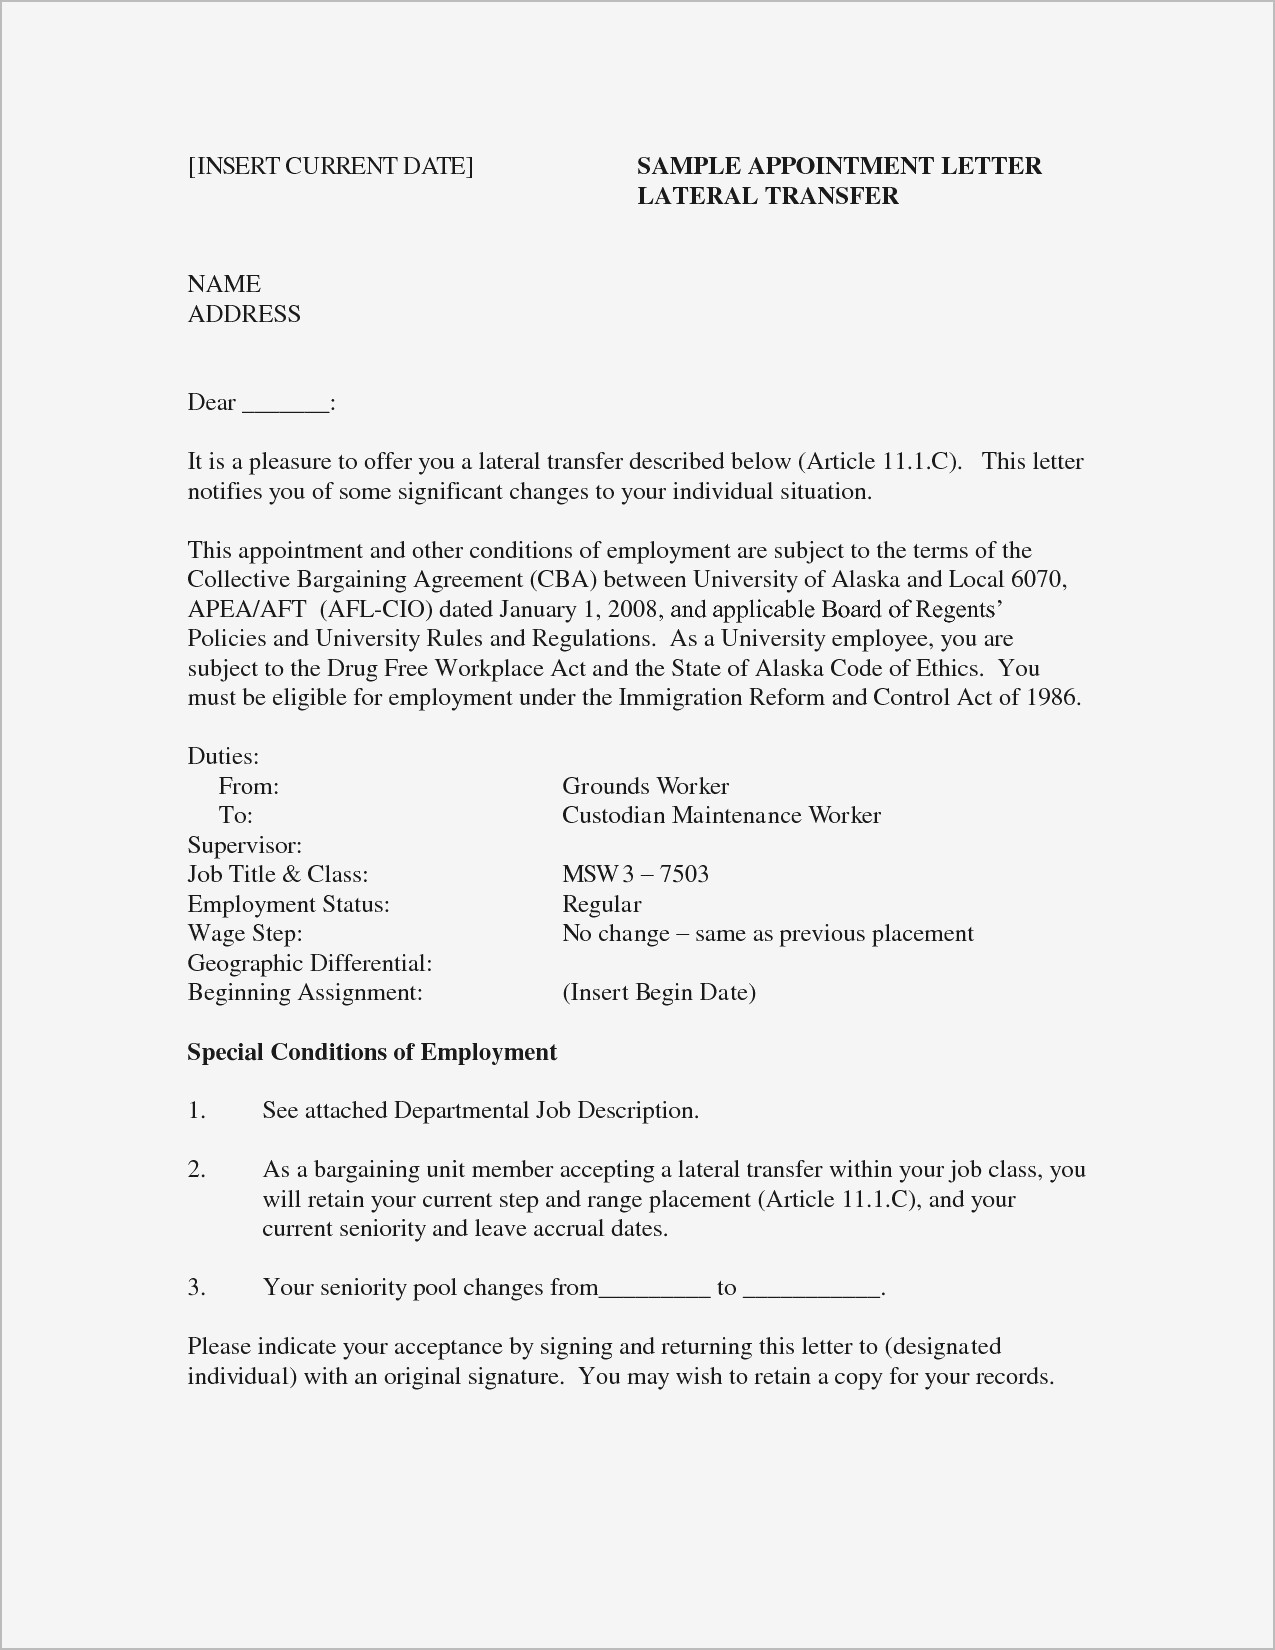 Change of address letter template examples letter templates change of address letter template change job title letter sample fresh sample for job fer spiritdancerdesigns Choice Image